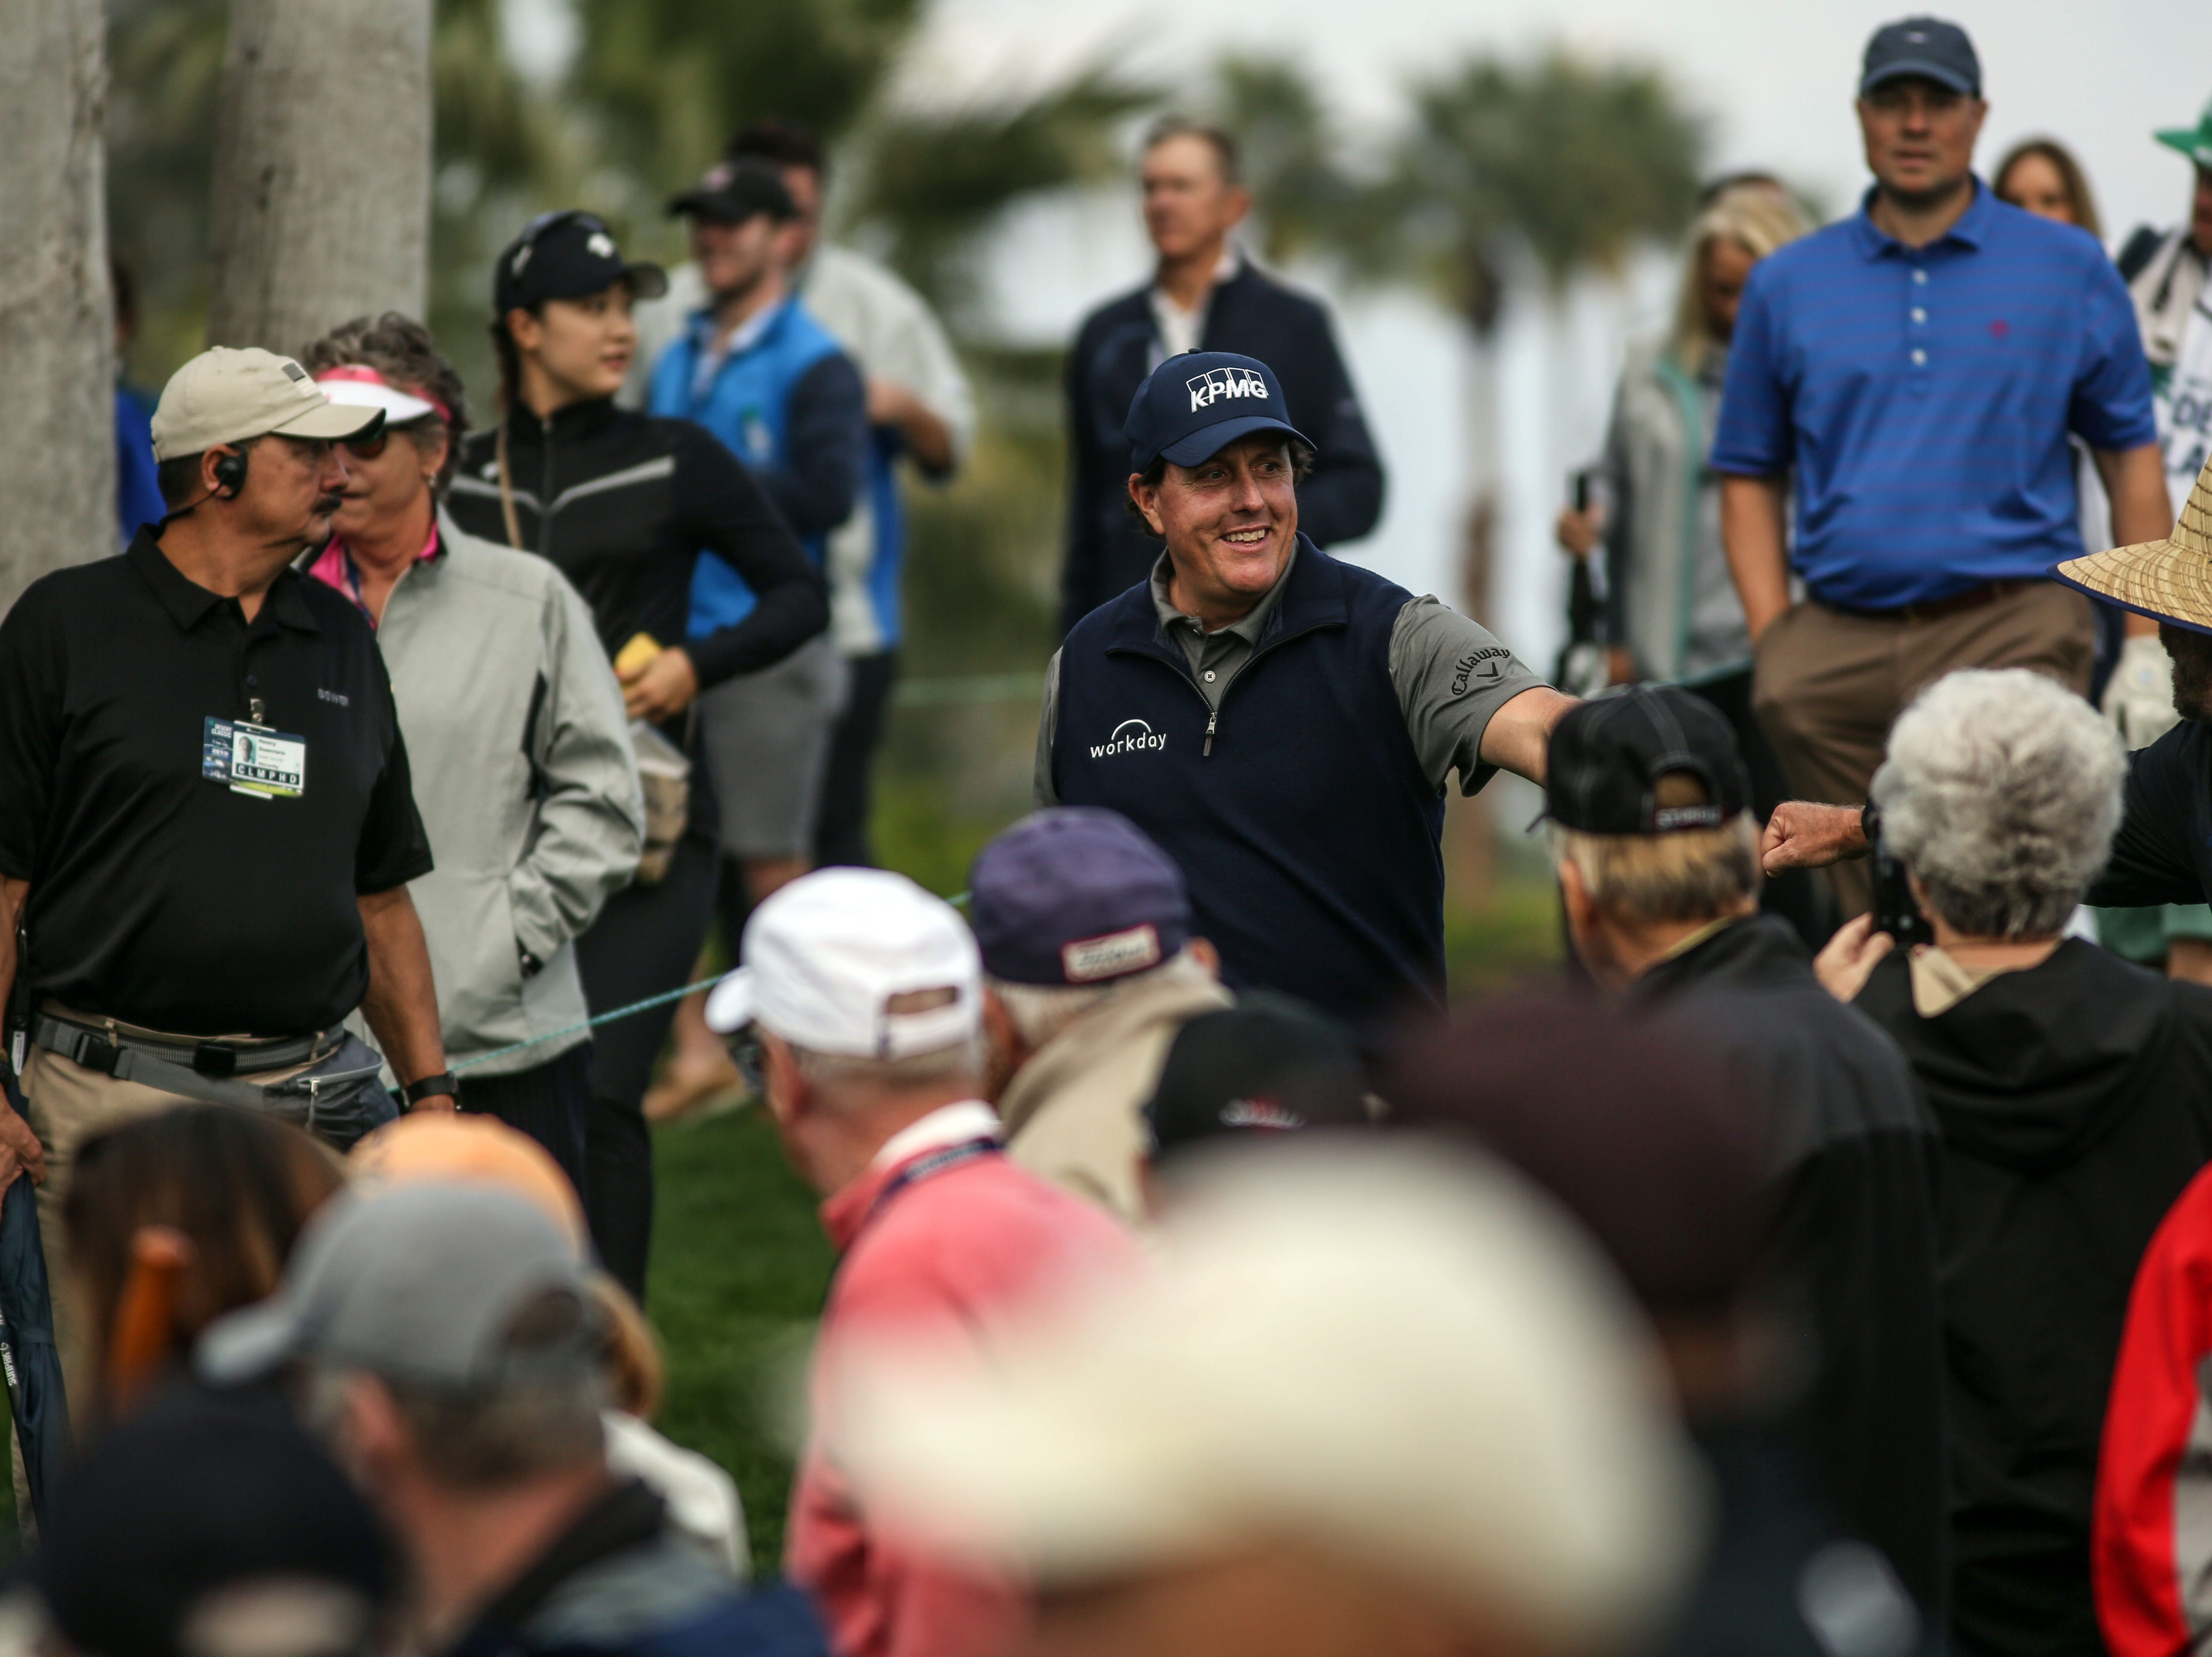 Phil Mickelson fist bumps a fan as he moves to the 18 tee at La Quinta County Club during the 1st round of the Desert Classic on Thursday, January 17, 2019. Mickelson leads at the end of the day with 12 under.